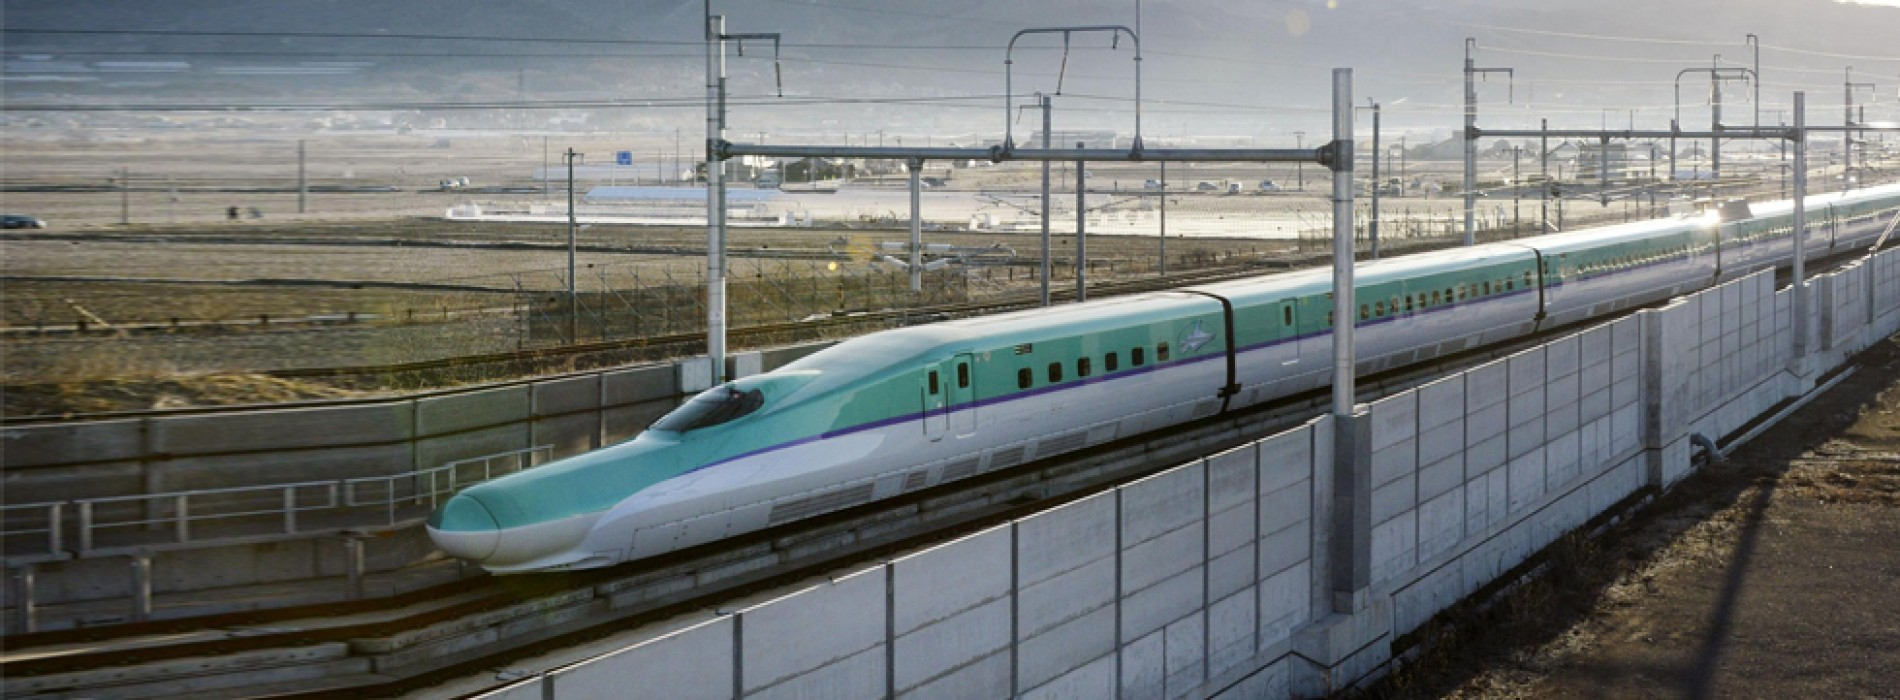 What can you expect from the much awaited Bullet Train?